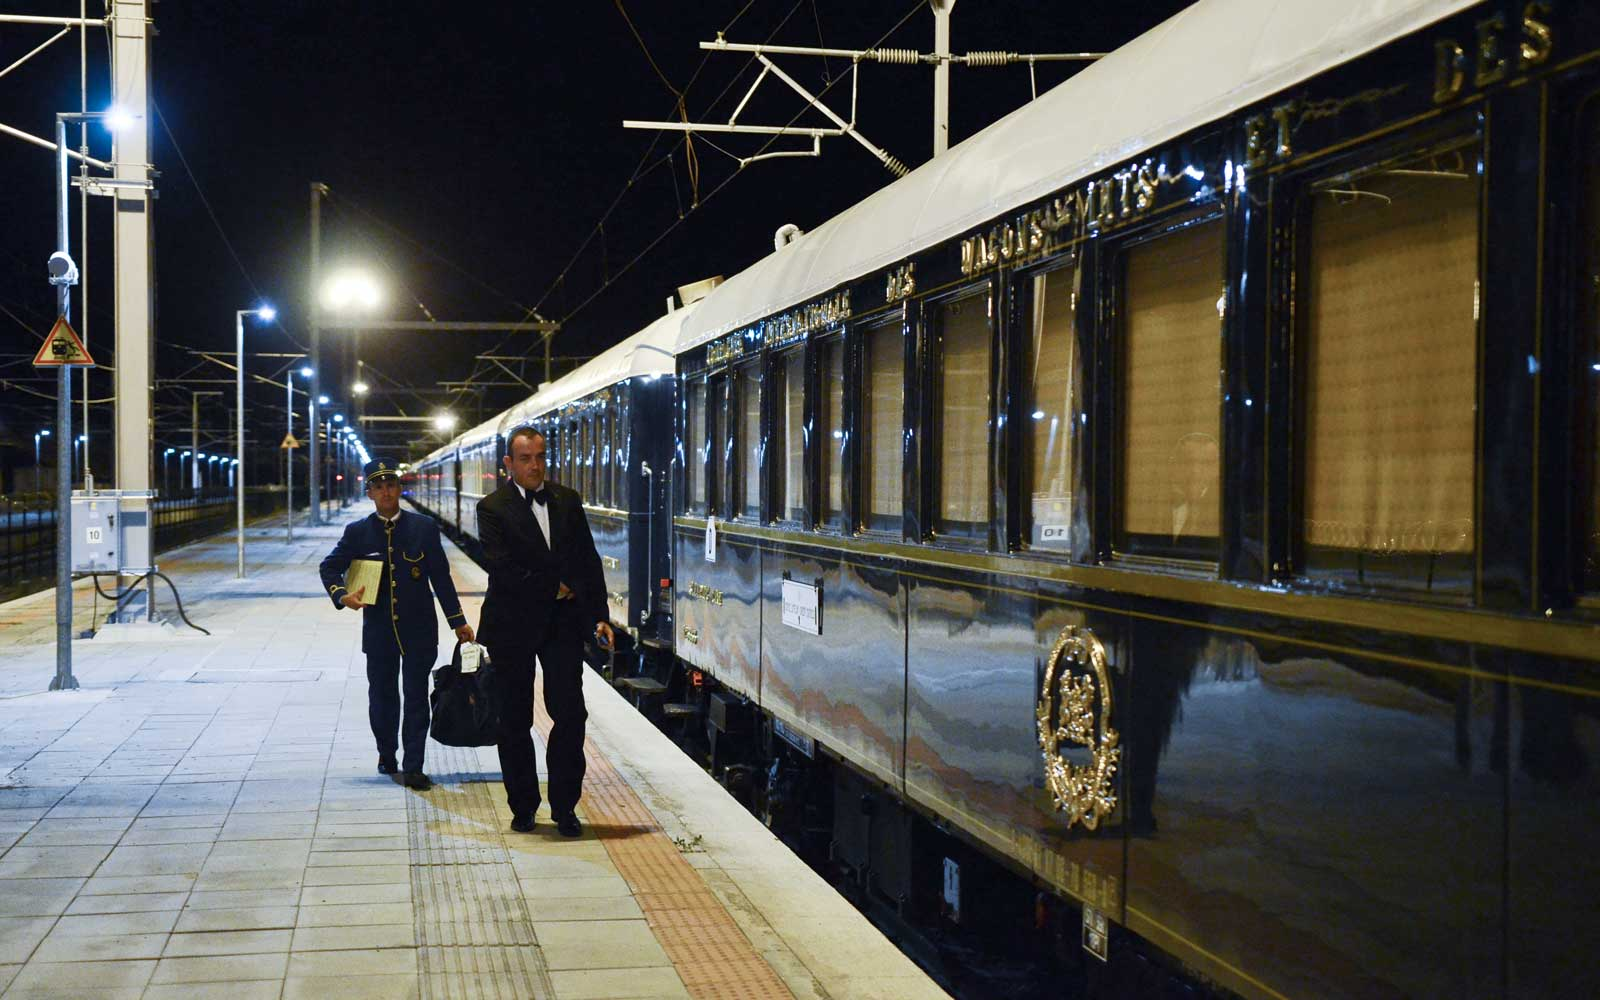 Venice Simplon Orient Express train and crew in Bulgaria